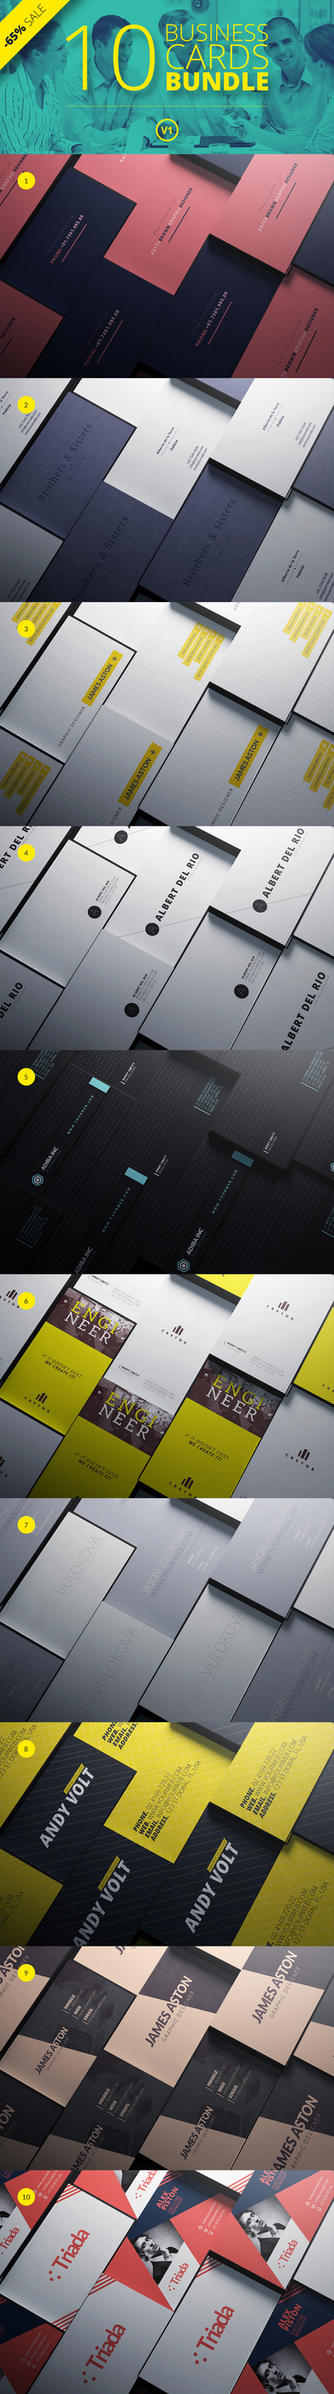 10 Business Cards Bundle V1 by cooledition